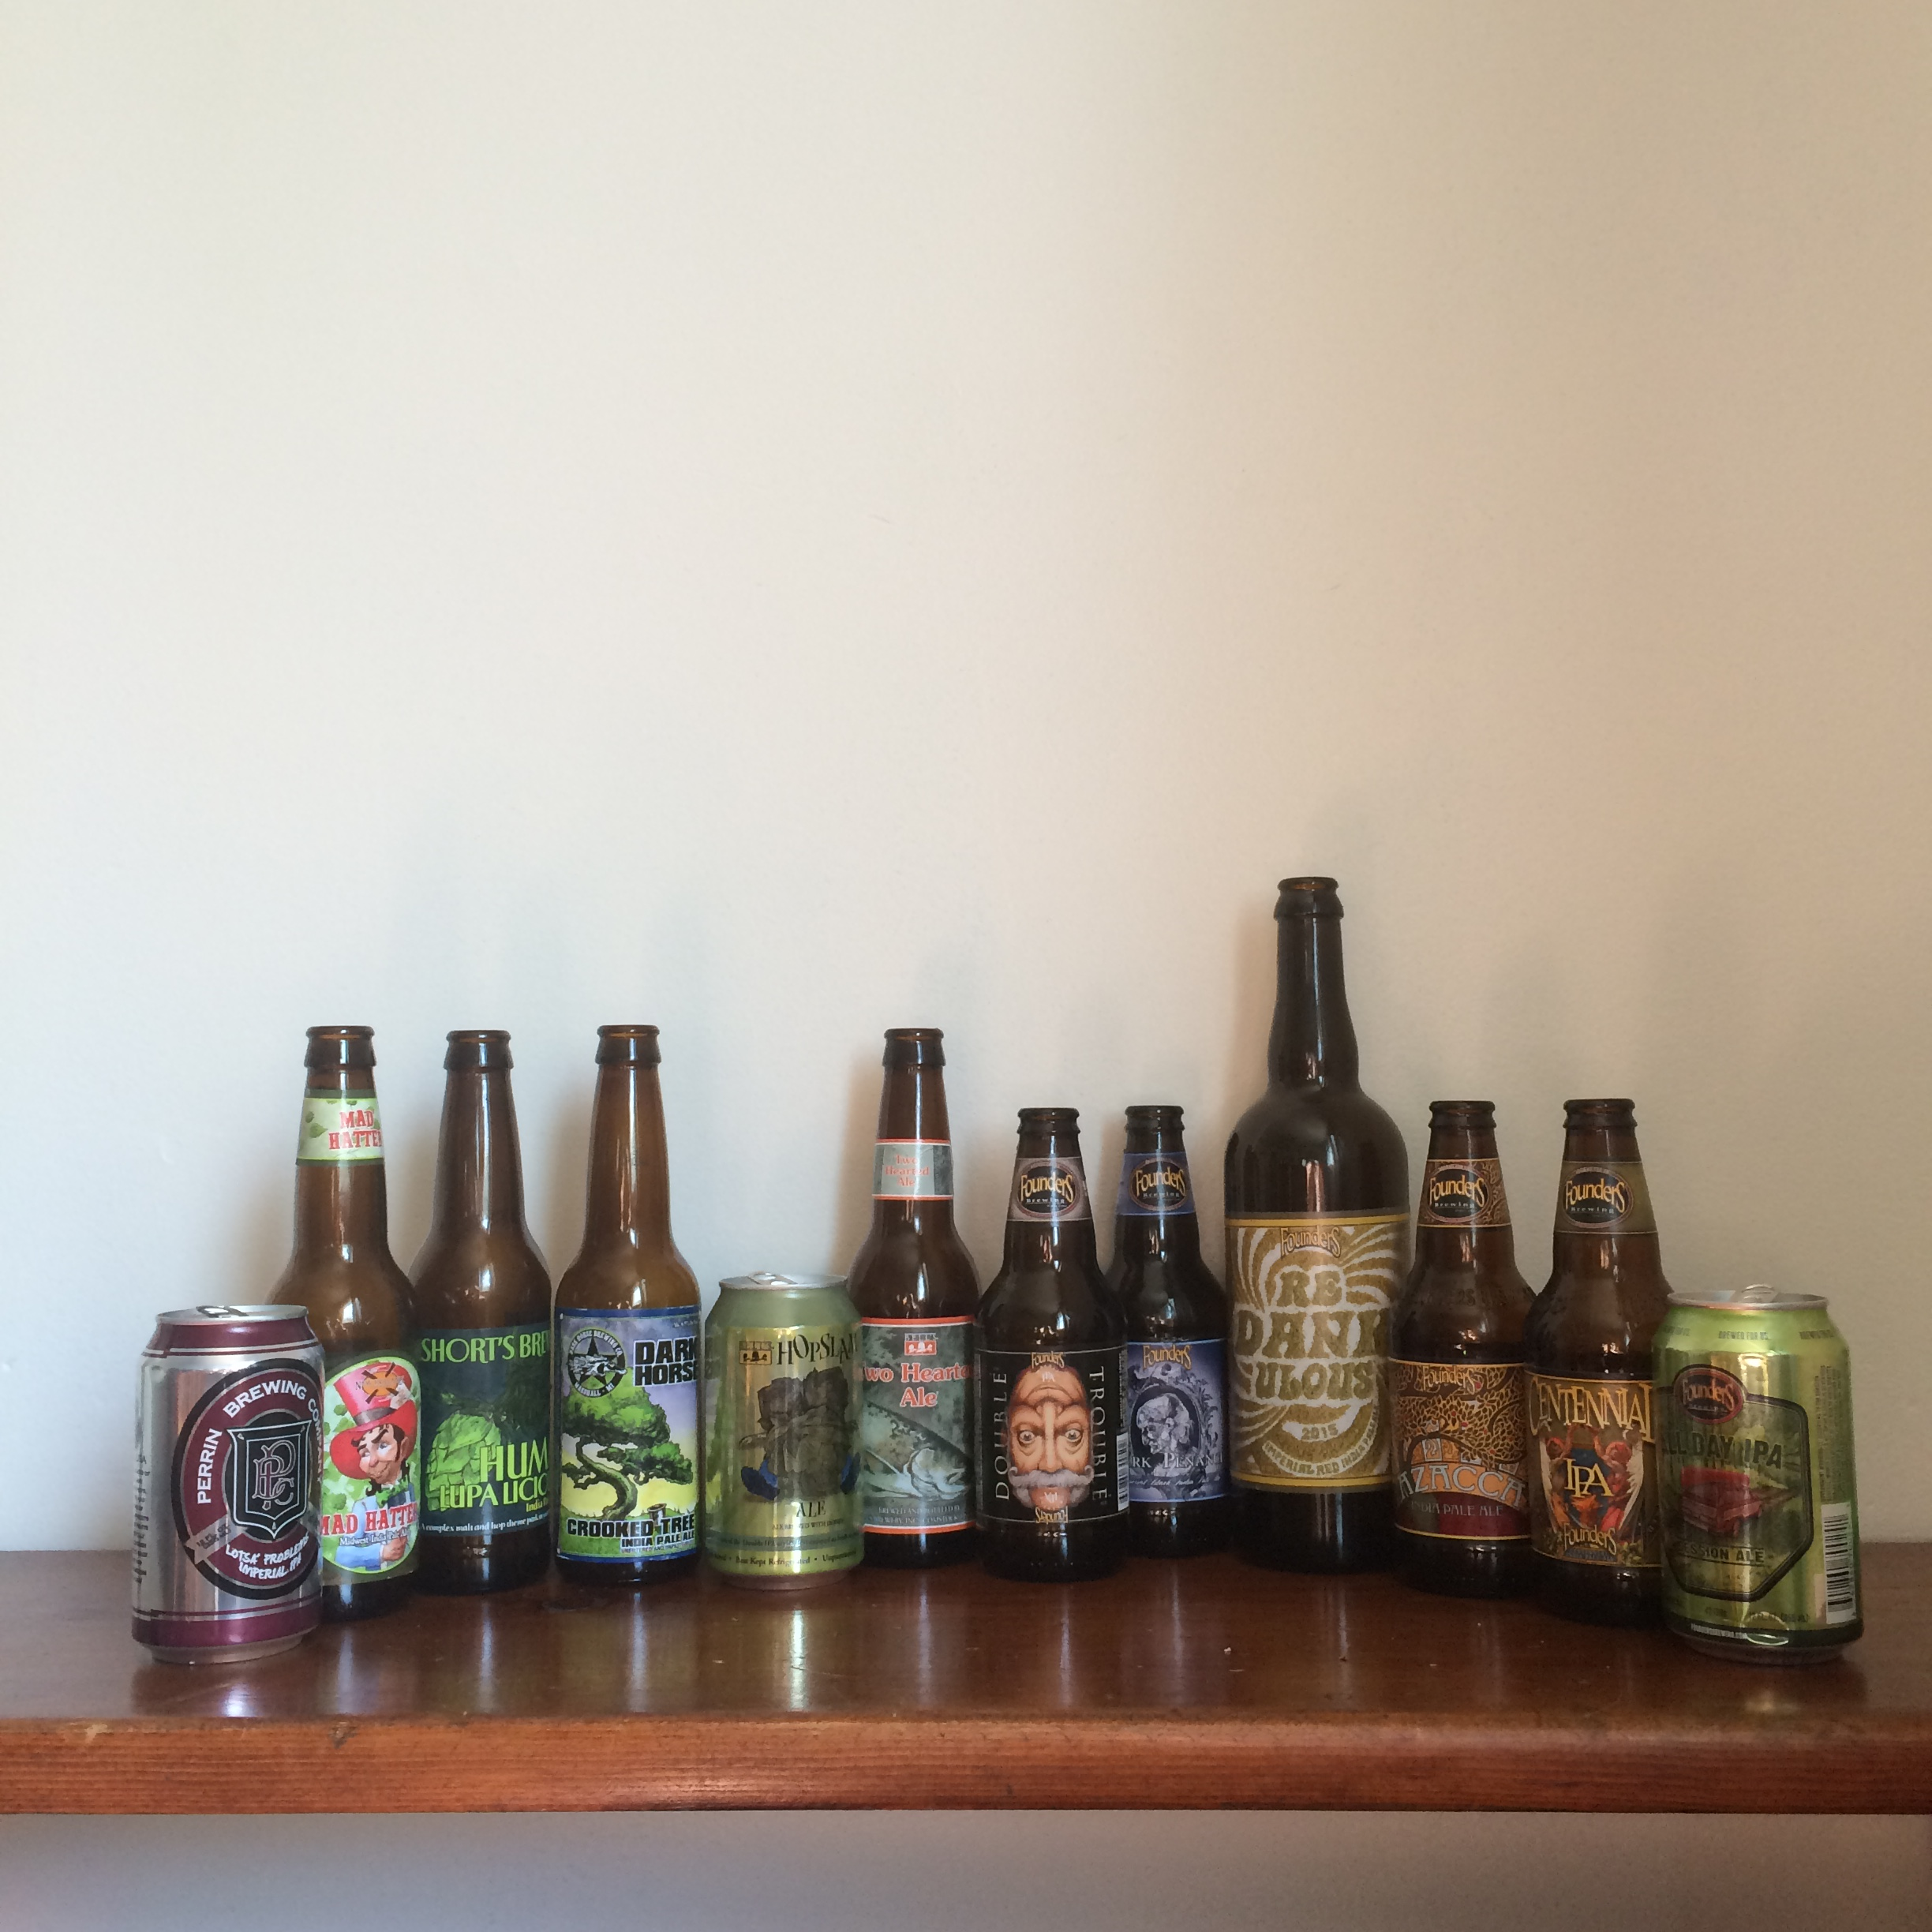 A photo of 12 different Michigan IPAs for a craft beer tasting event. Includes beer from Perrin Brewing, New Holland Brewing, Short's Brewing, Dark Horse Brewing, Bell's Brewery, and Founder's Brewing.